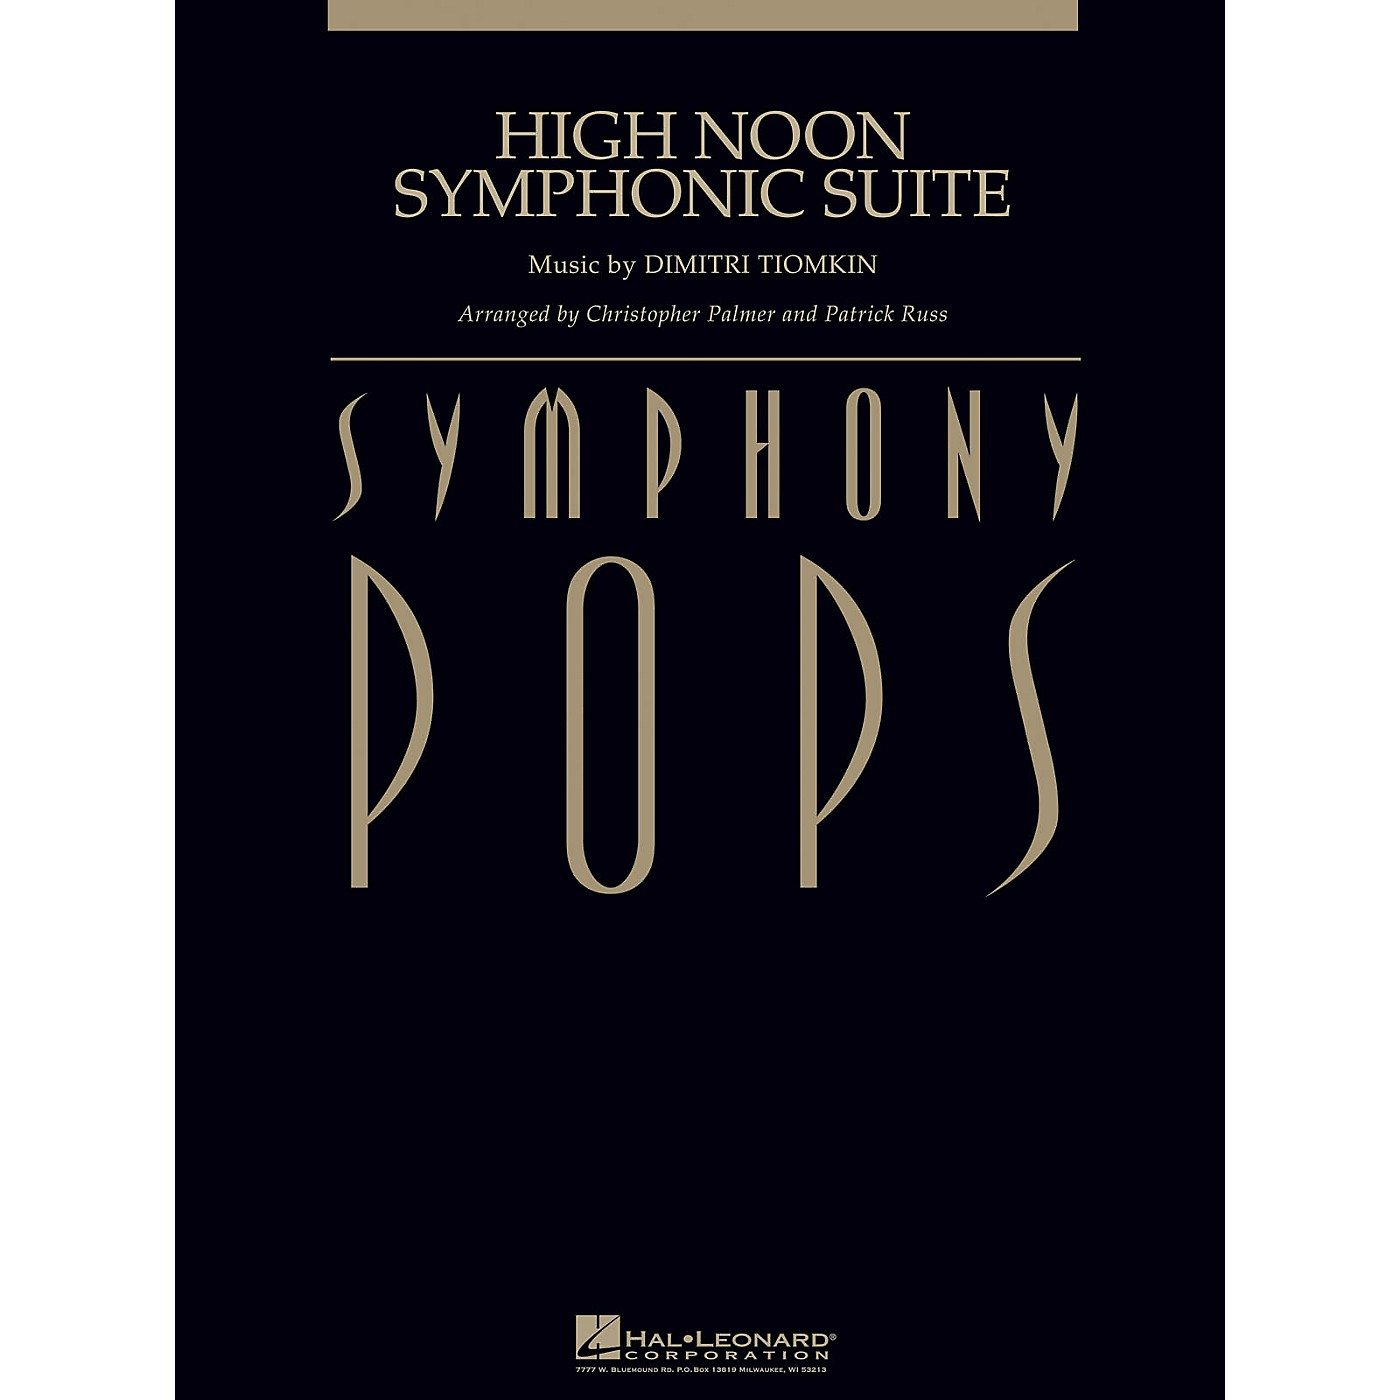 Hal Leonard High Noon Symphonic Suite (with Male Vocal (opt.) Score and Parts) Concert Band Arranged by Patrick Russ thumbnail